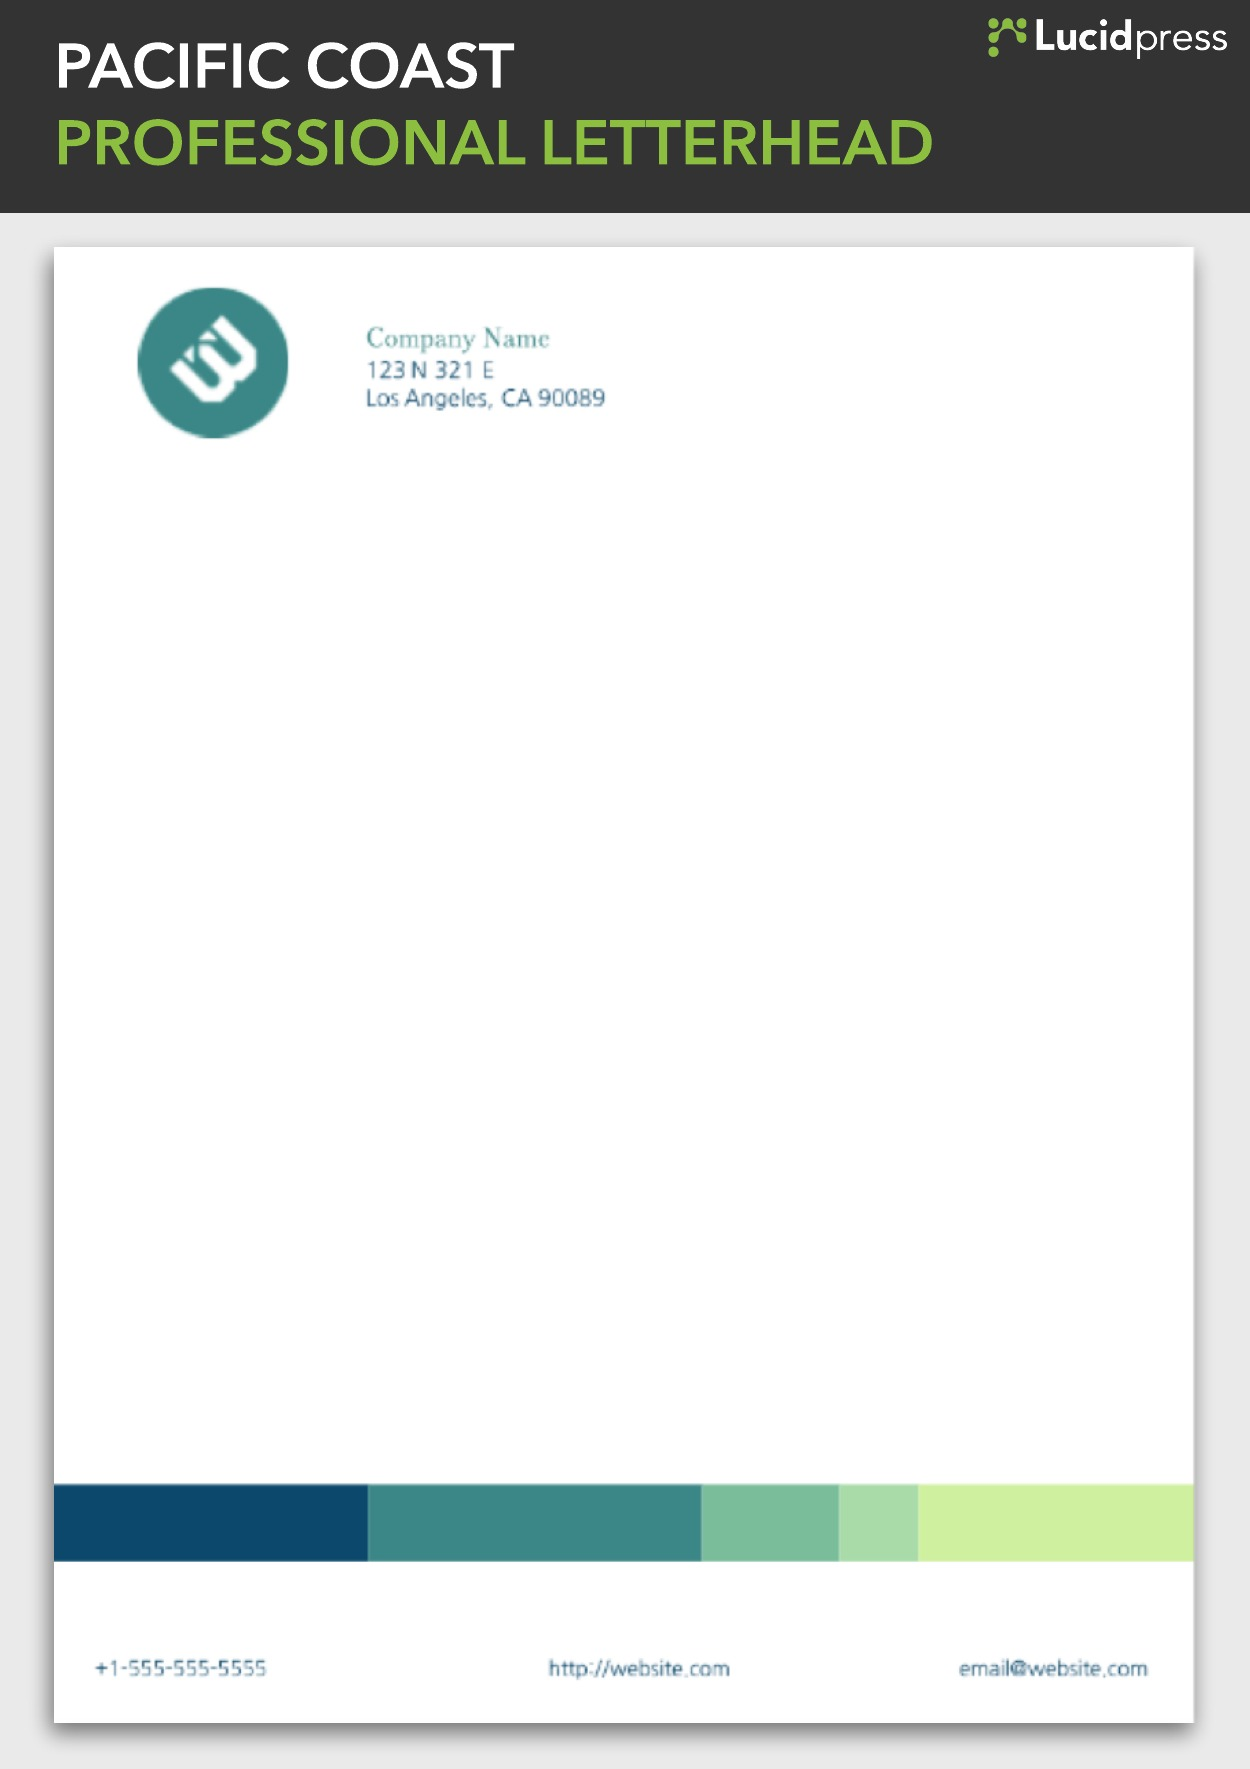 Letterhead templates, stationery examples